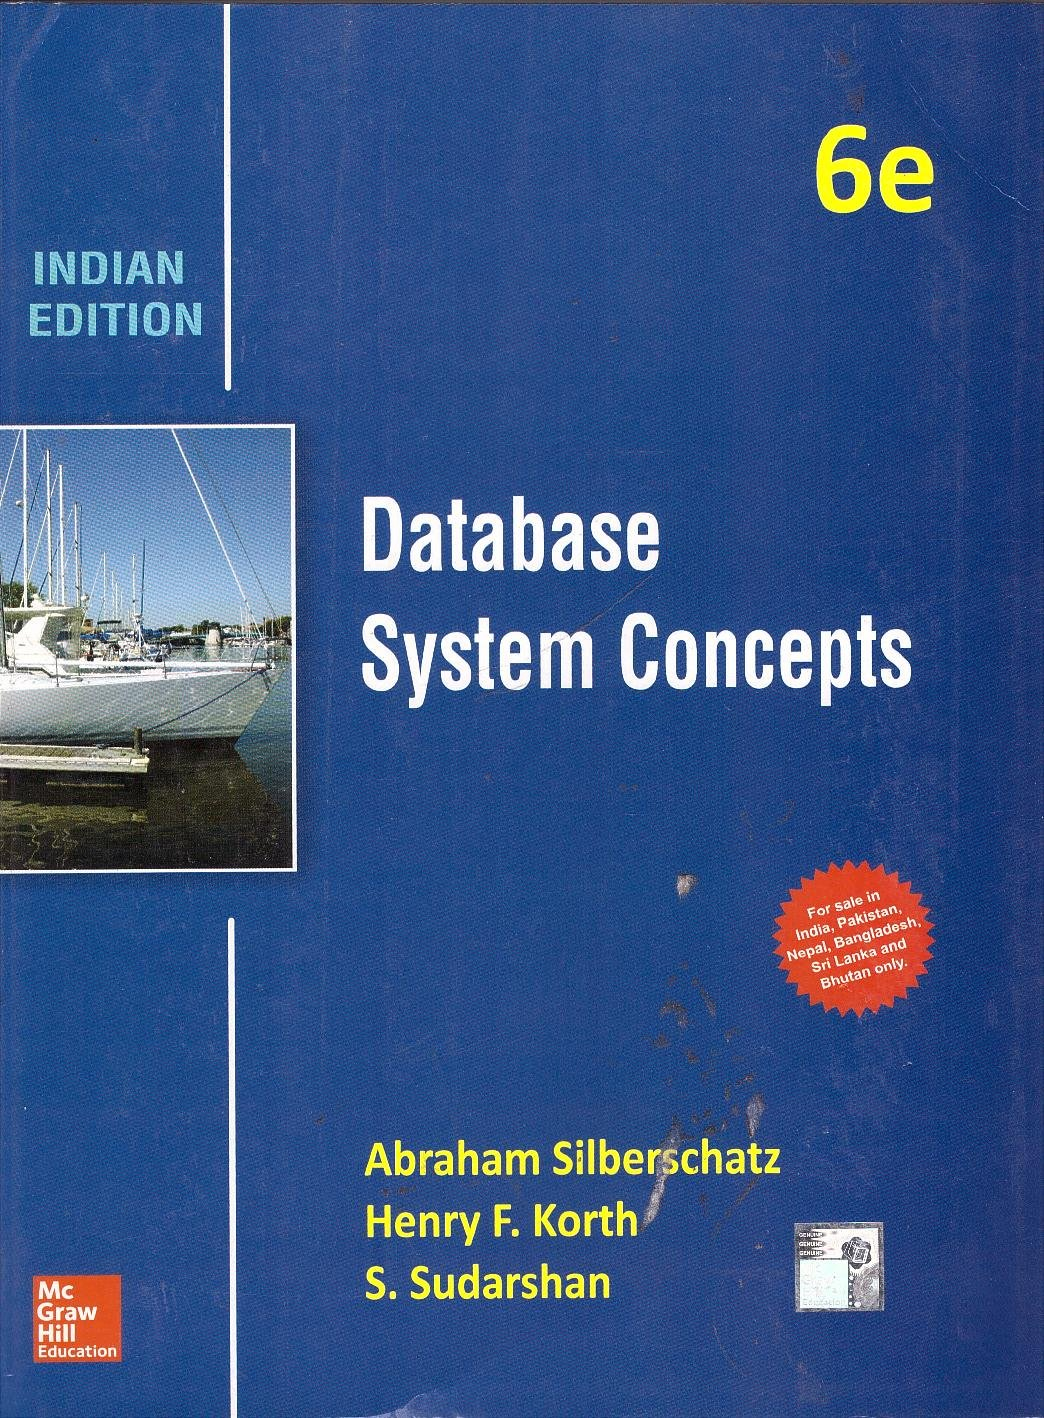 Database System Concepts By Abraham Silberschatz 4th Edition Pdf